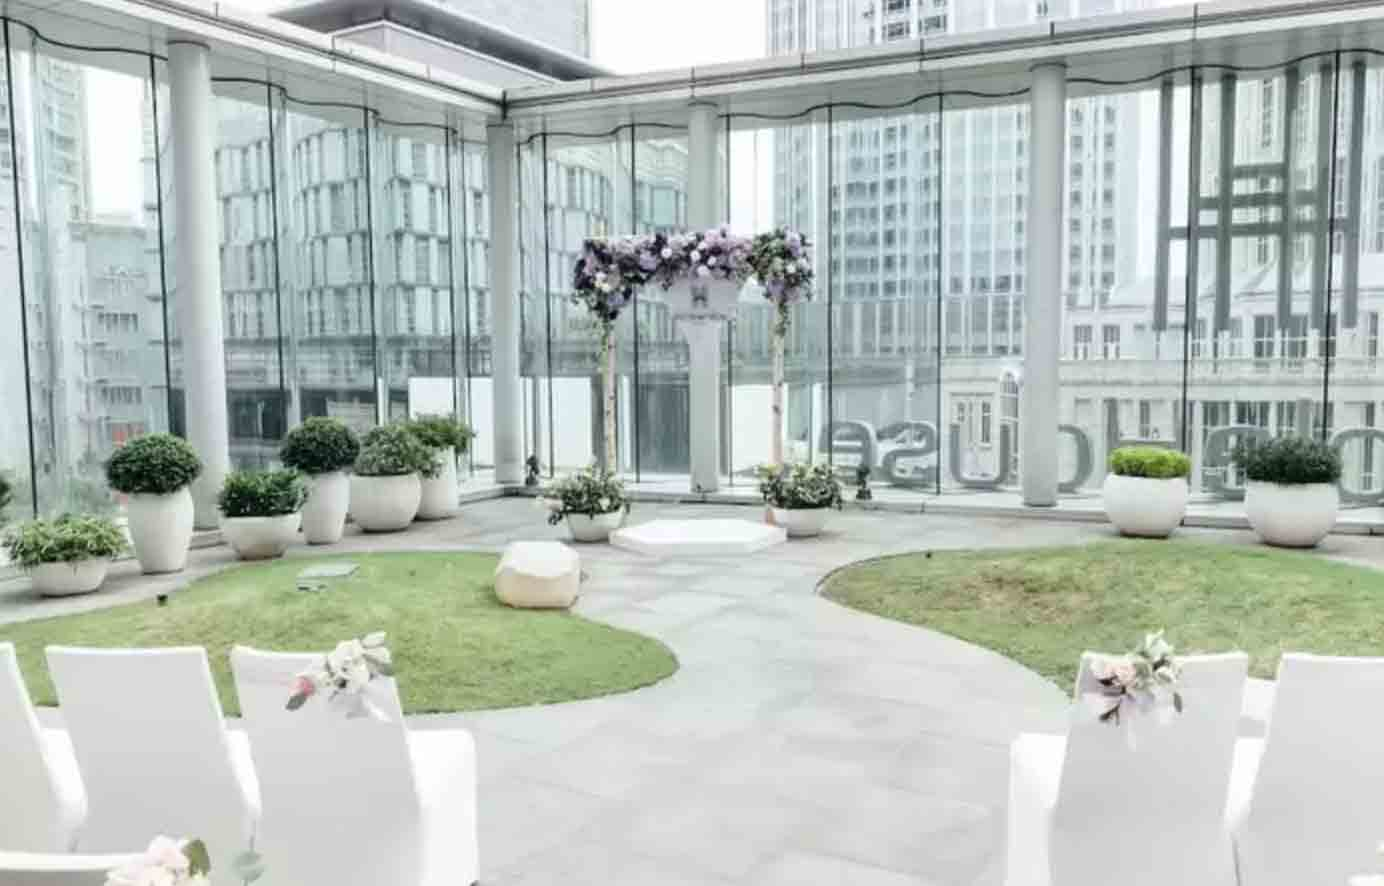 Humble House Taipei All-Inclusive Wedding Package (Venue & F&B Costs Not Included - Dependent on Guest Count)